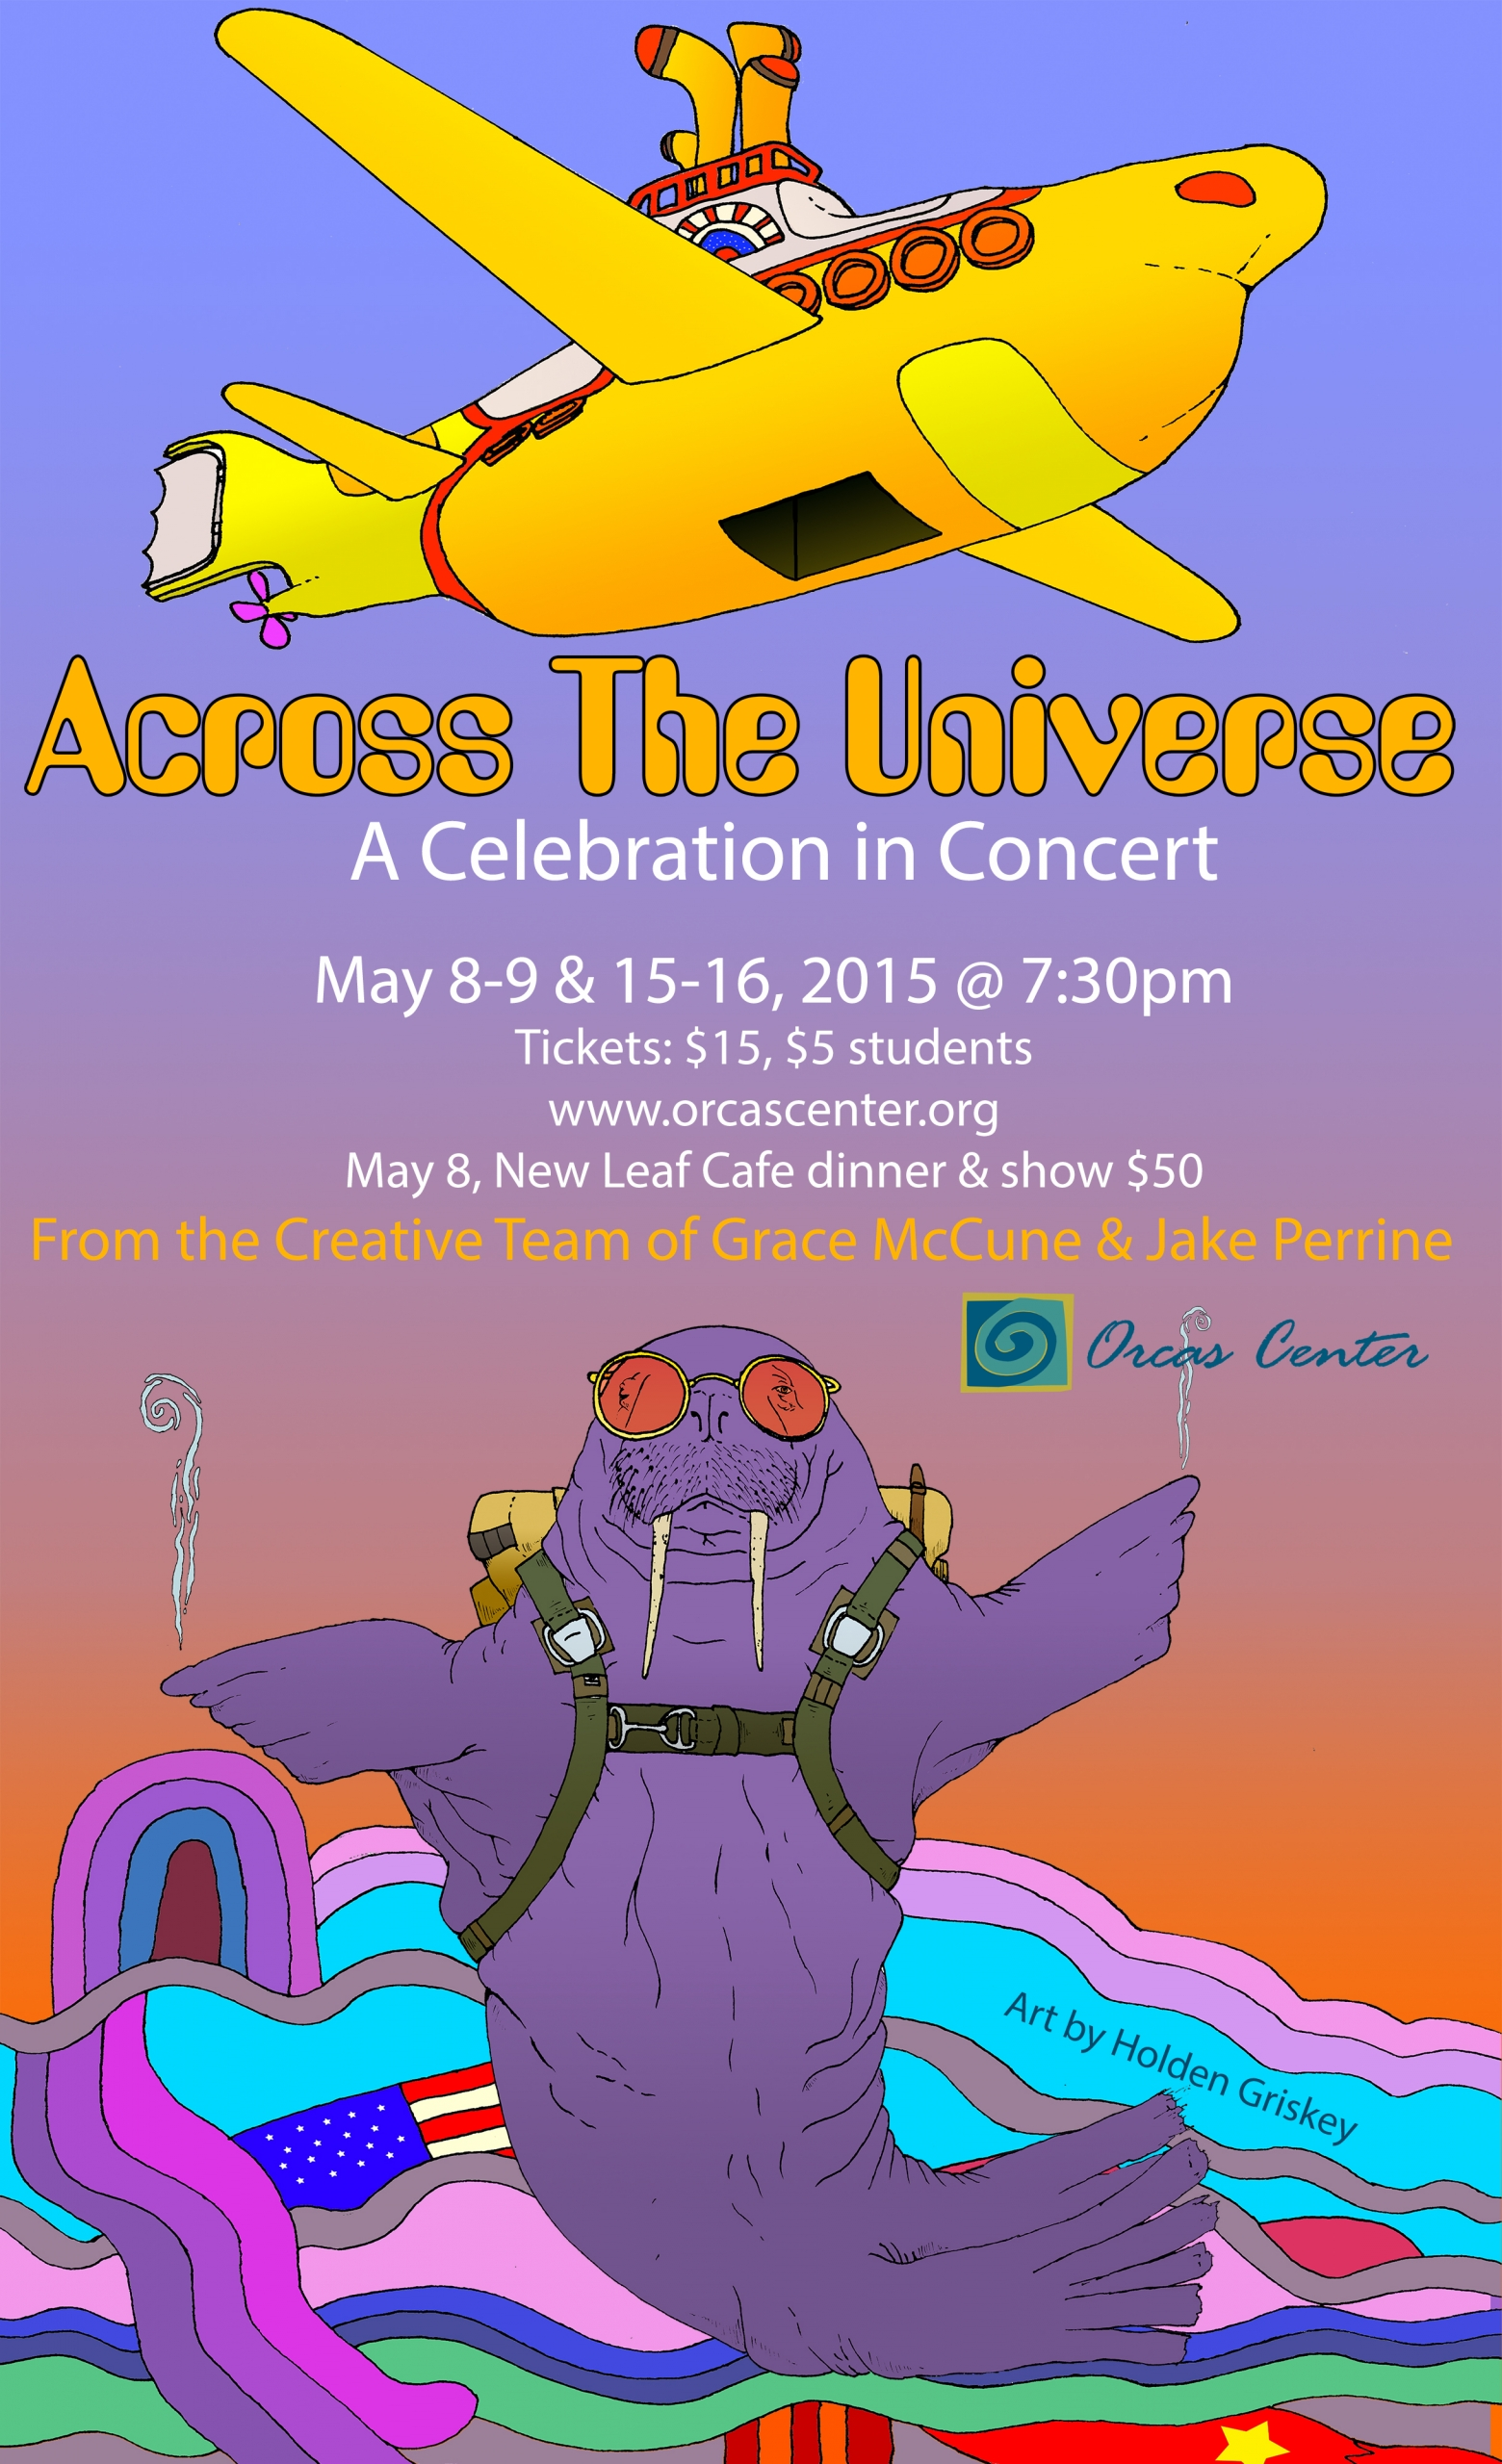 Archive #5: Across the Universe